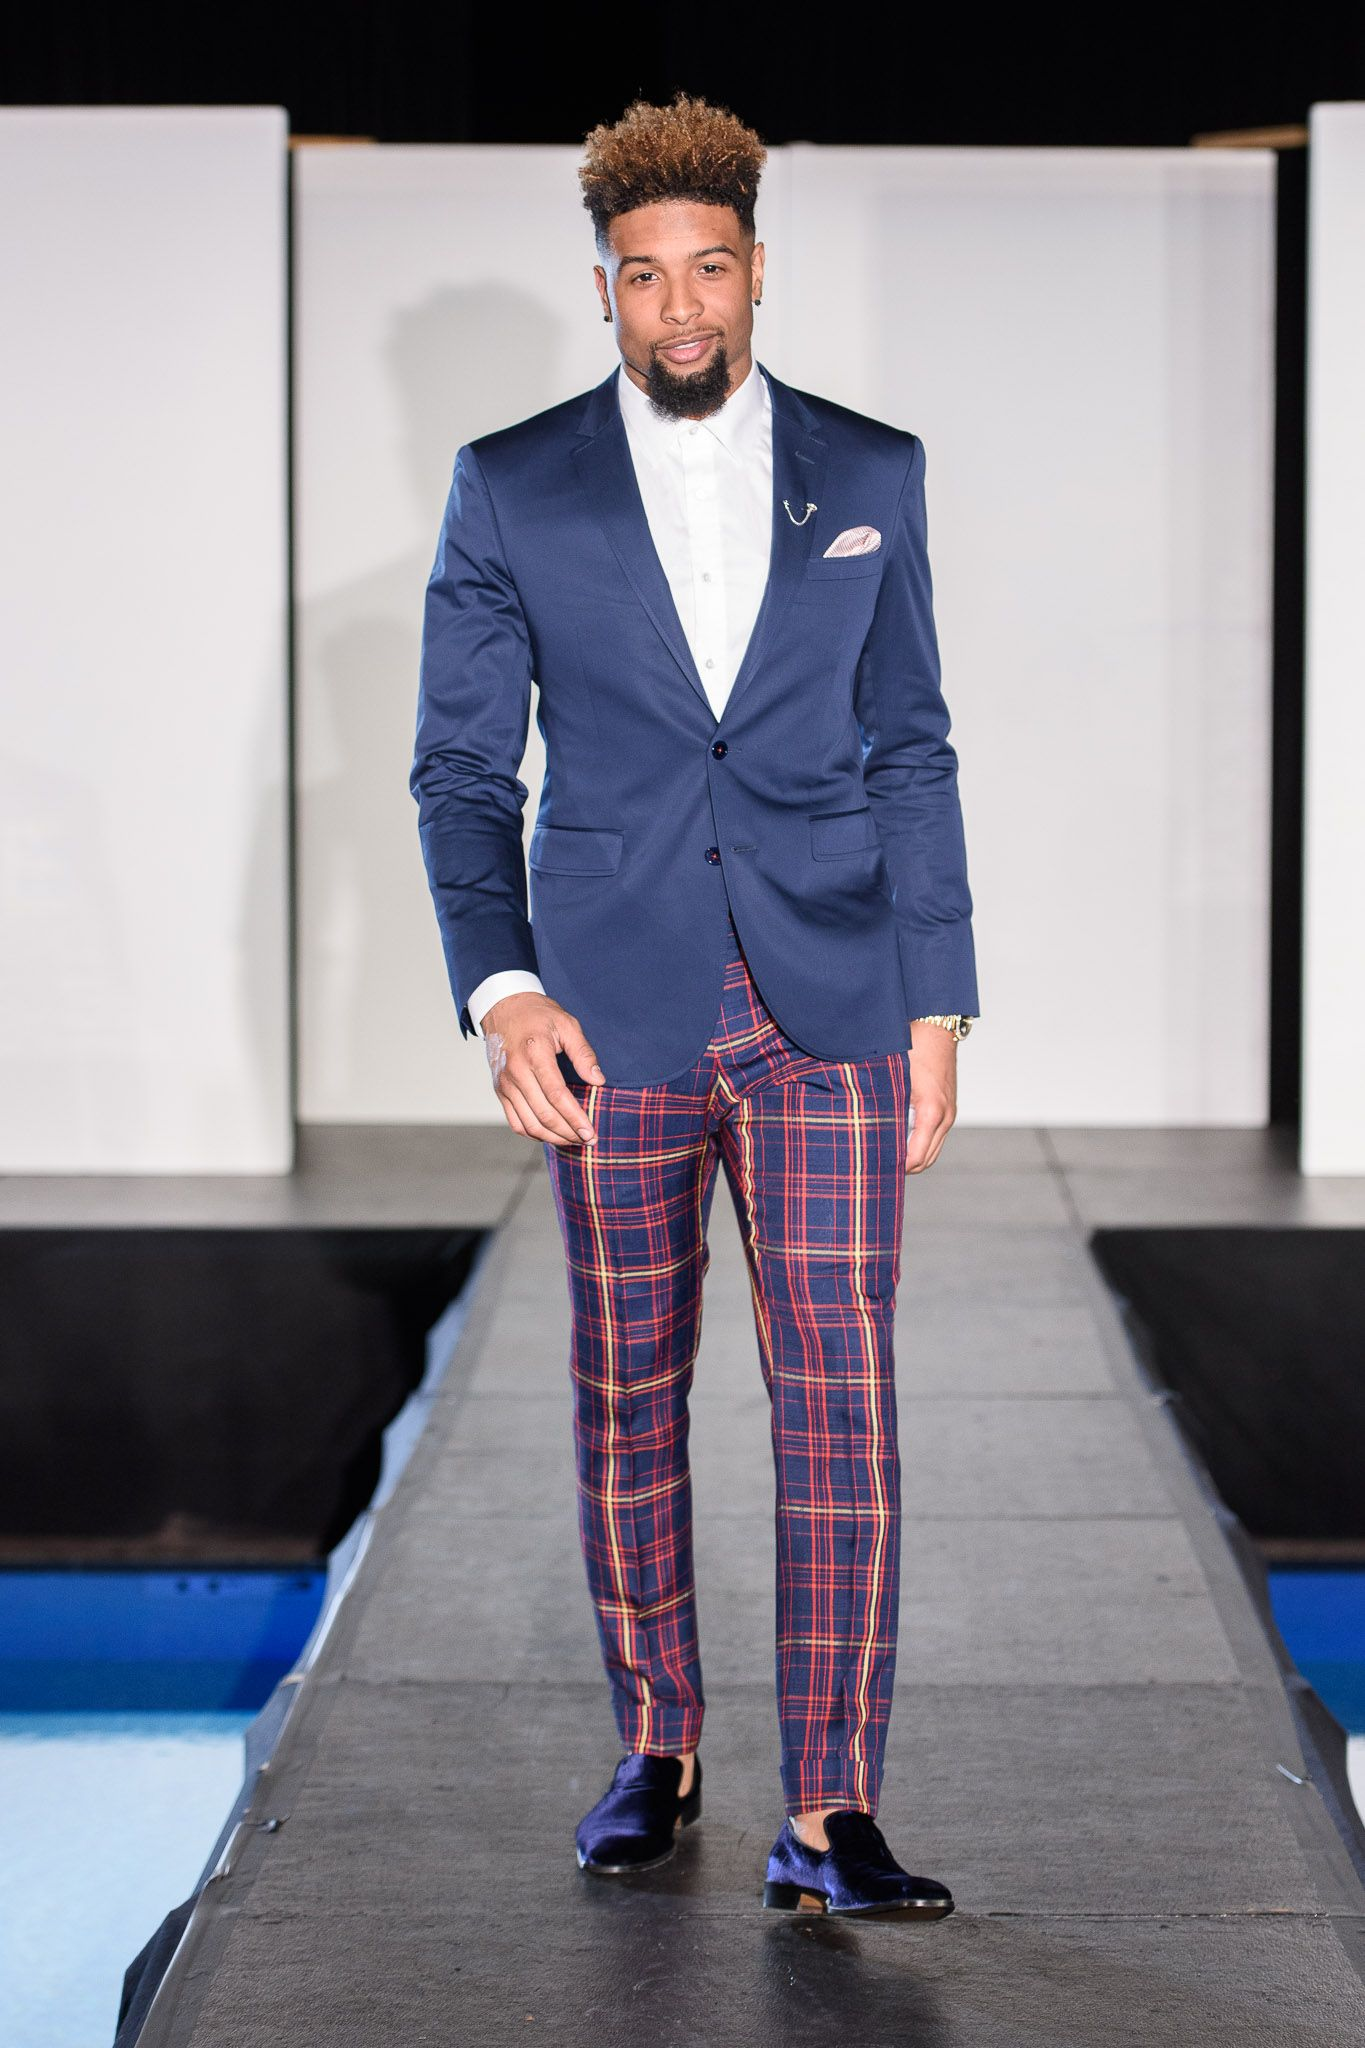 odell beckham jr in a suit - Google Search